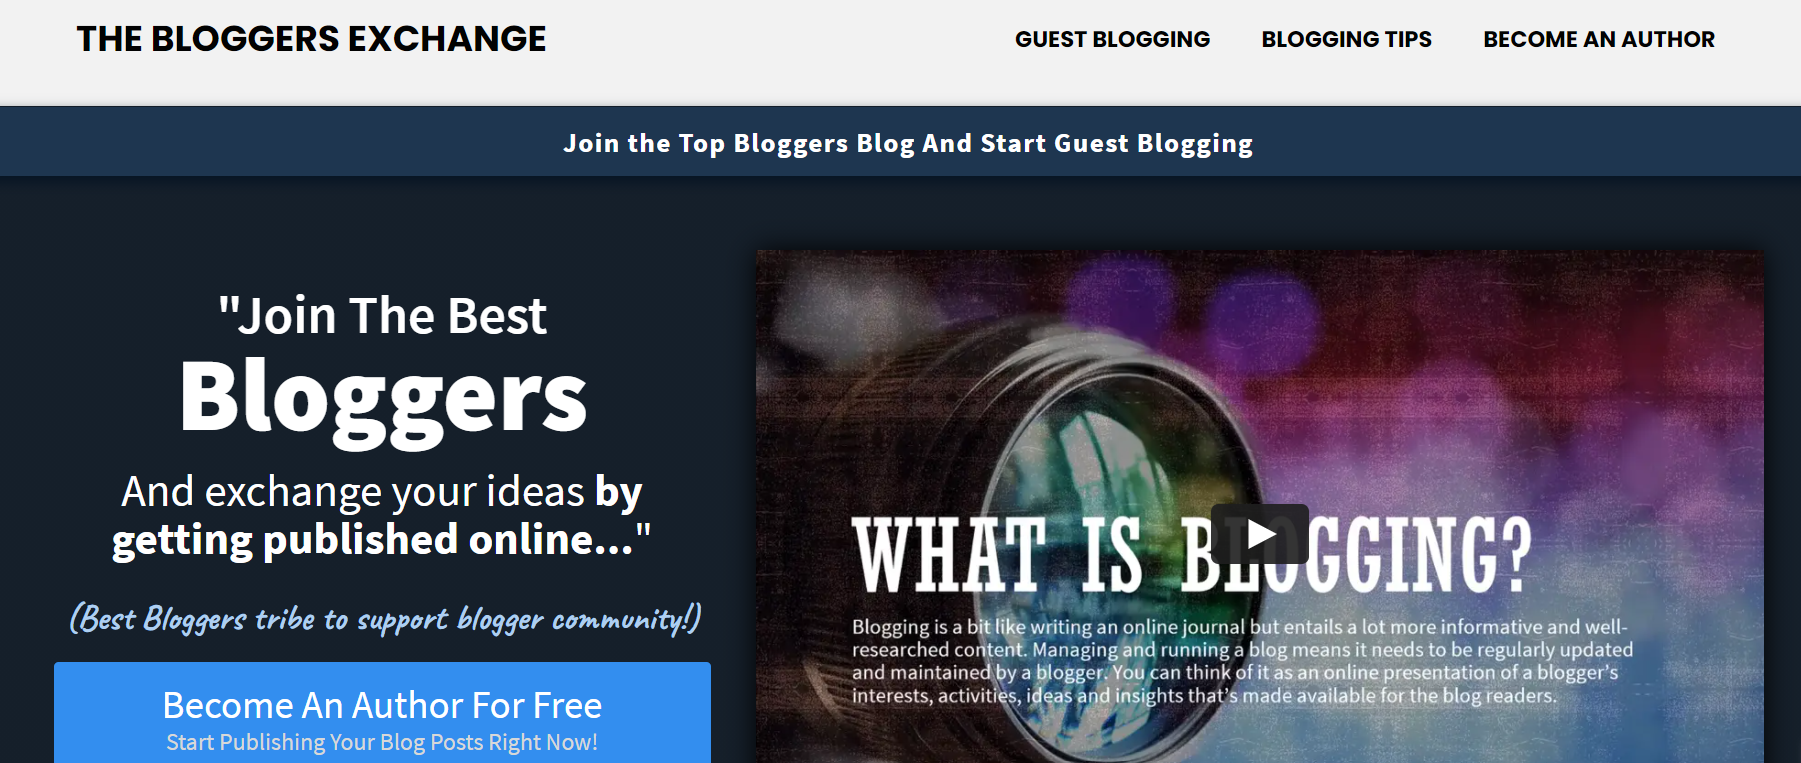 Best-blogger-exchange-blog-for-top-bloggers-guest-posting